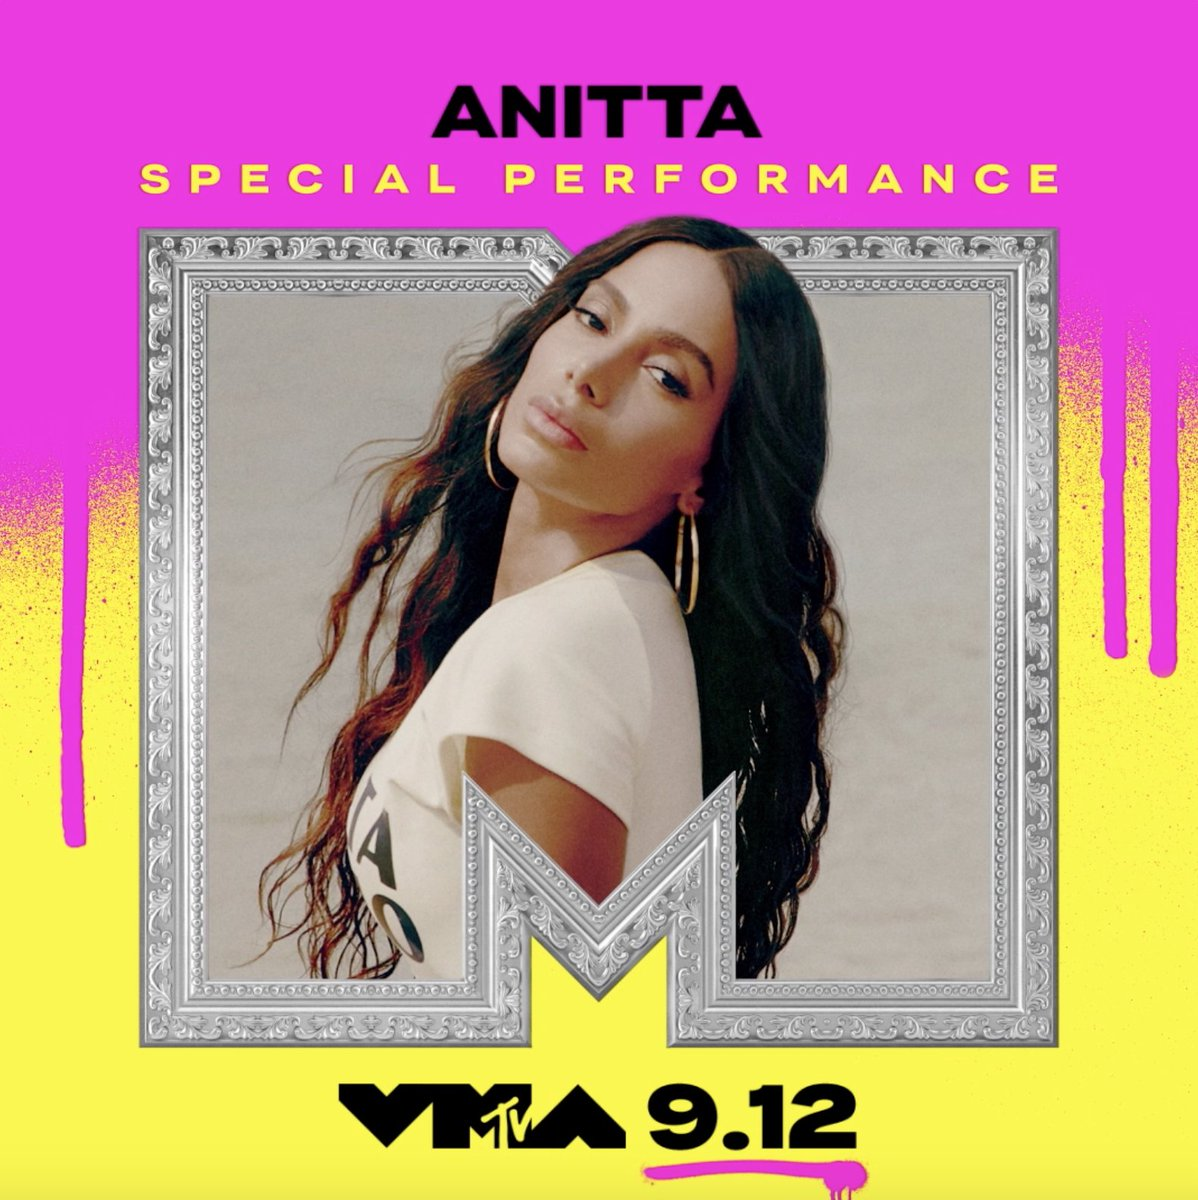 SO excited to see @Anitta at the #VMAs! ✨ https://t.co/A4PSIh33dM